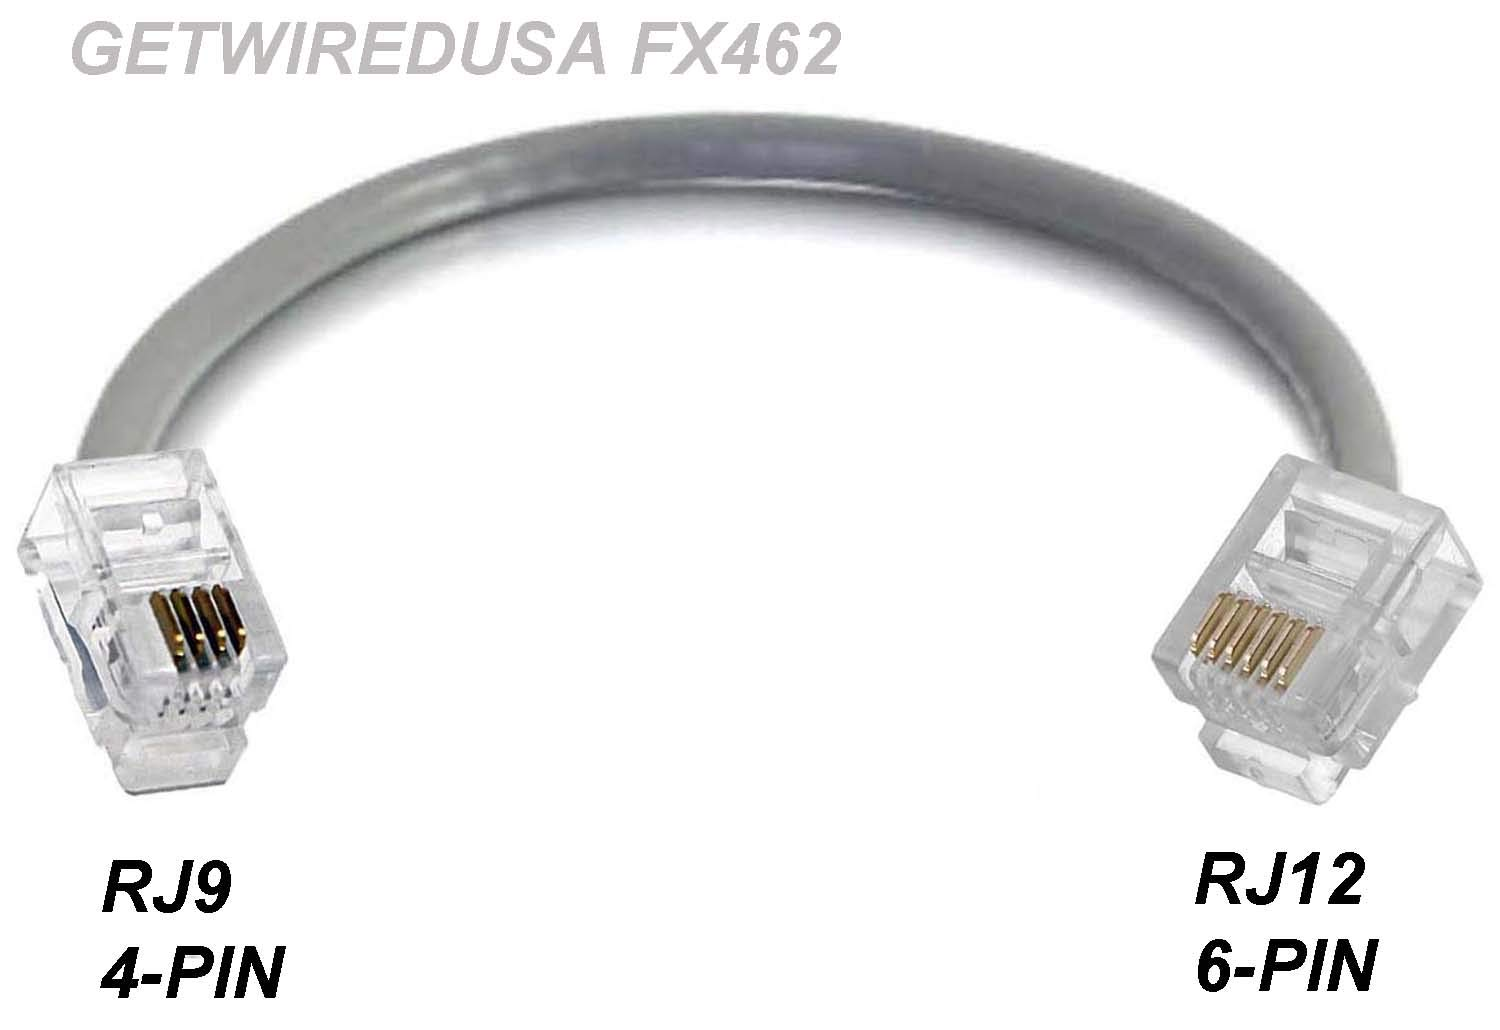 RJ9 RJ10 RJ22 4P4C 4-PIN to RJ12 RJ11 6P6C 6-PIN NETWORK PHONE HEADSET JACK MALE CABLE ADAPTER